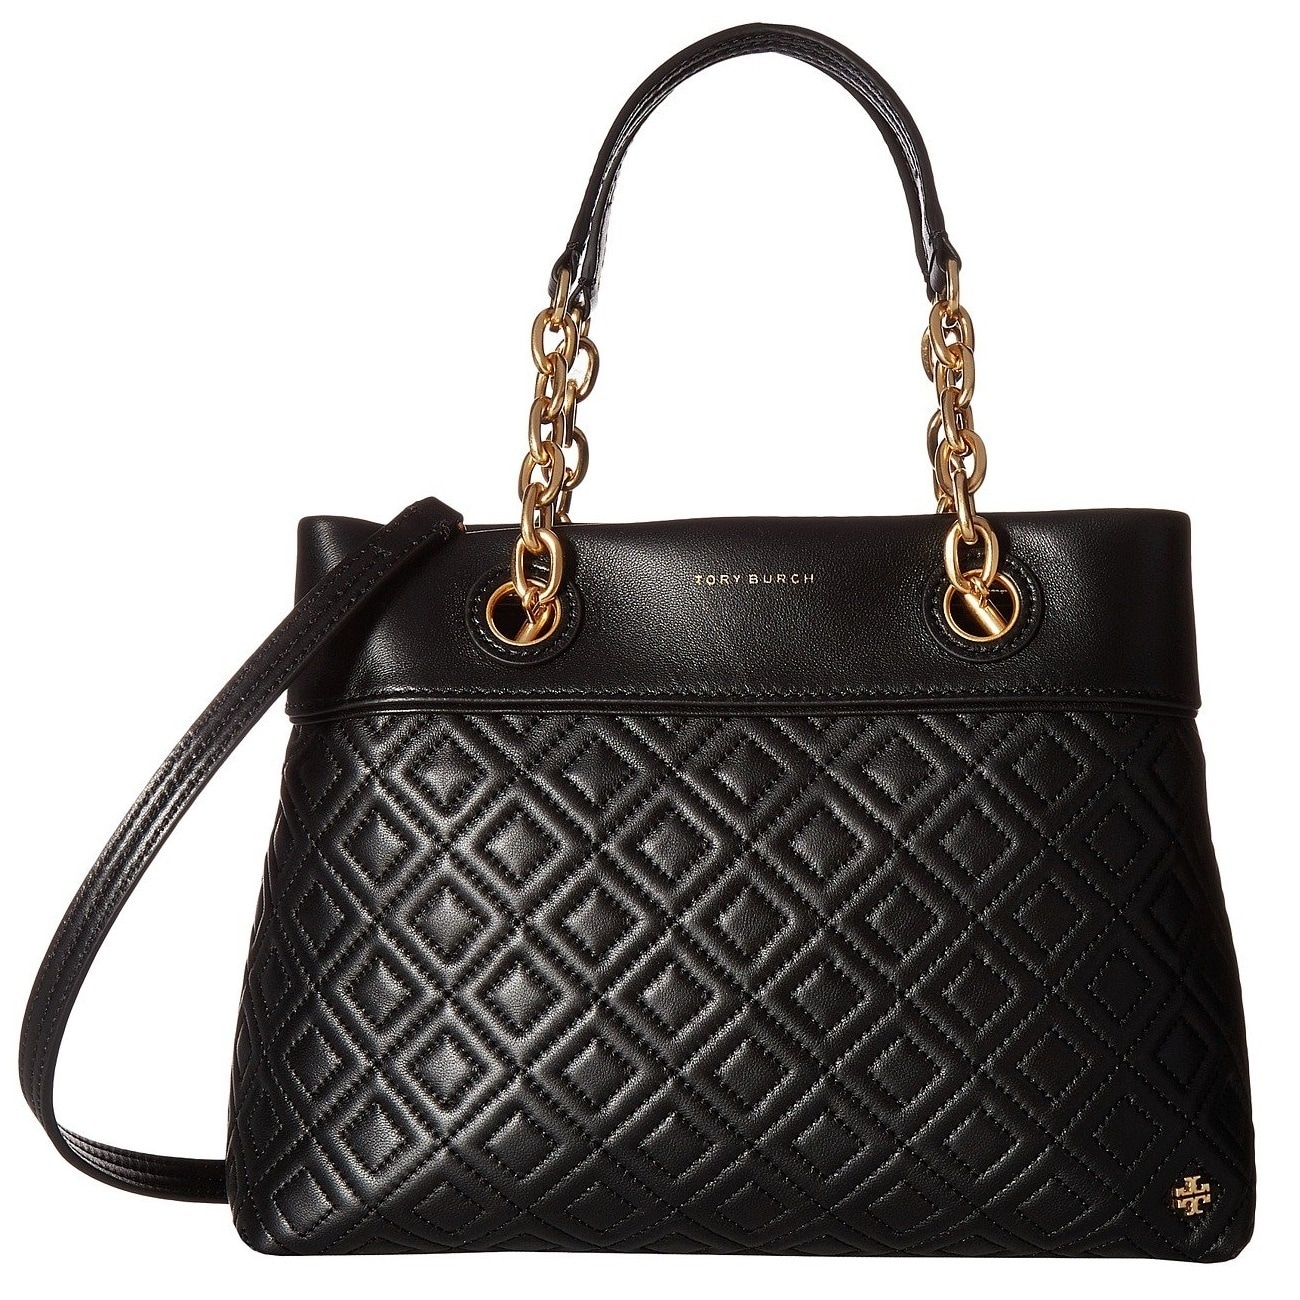 Designer Handbags Find Great Deals Ping At